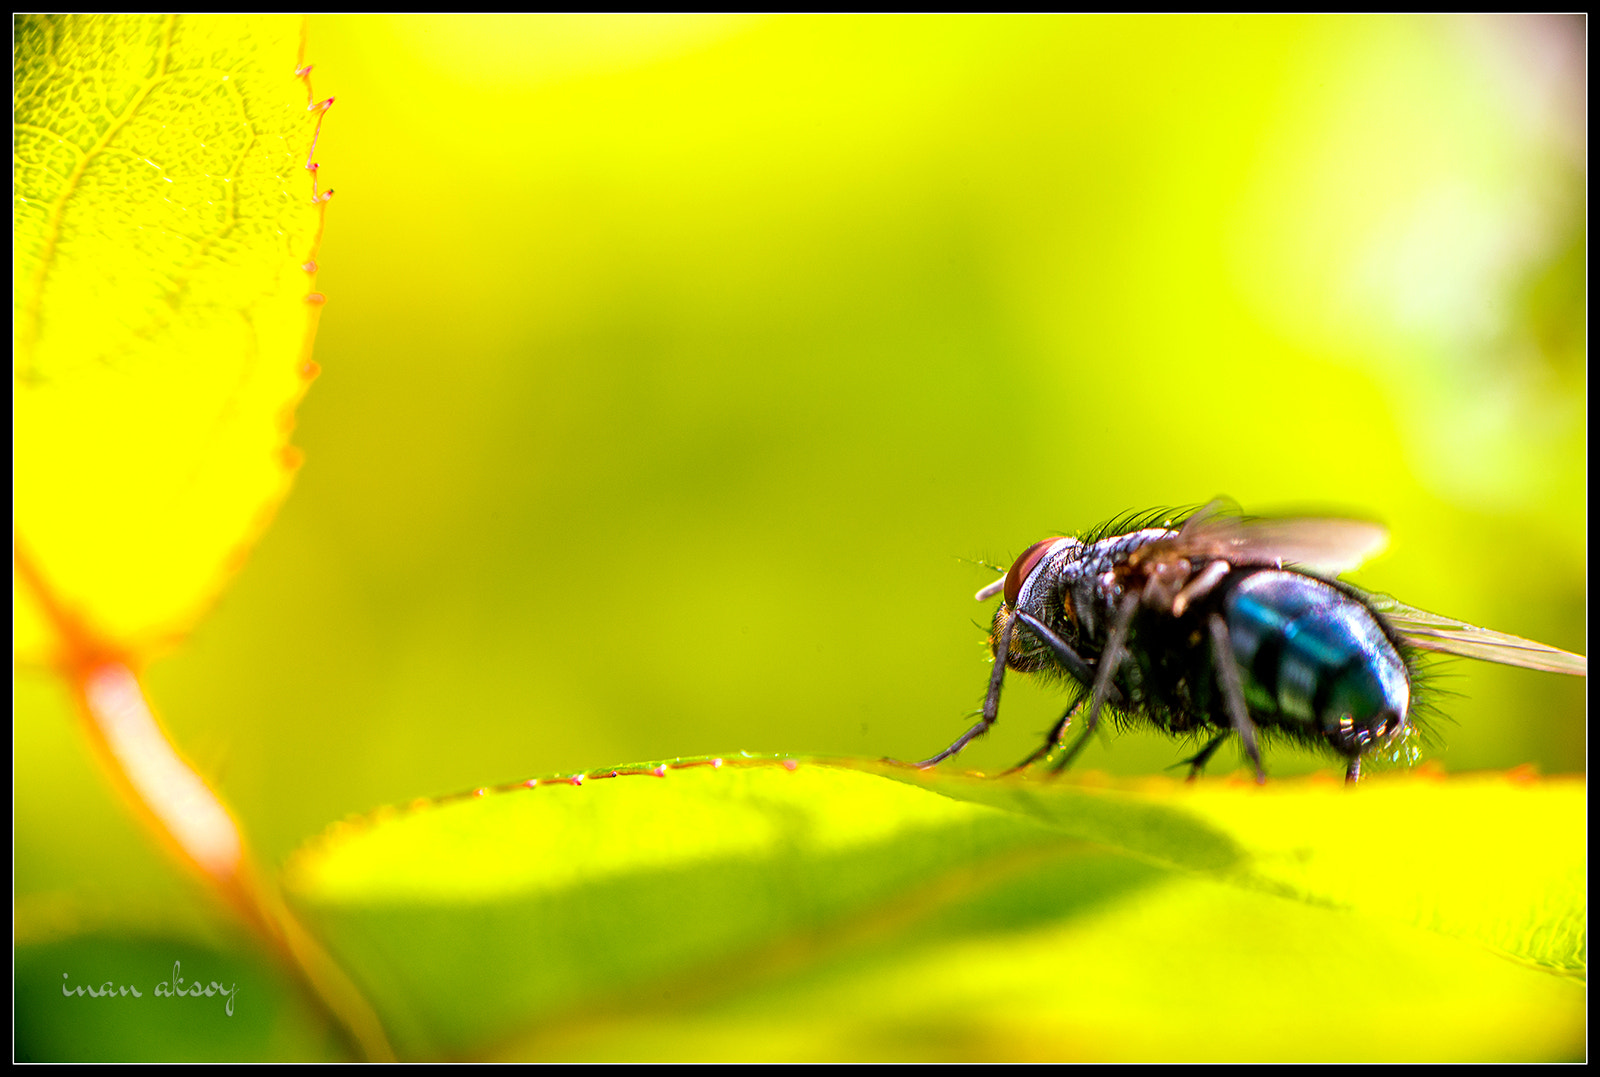 Photograph Fly by Inan Aksoy on 500px